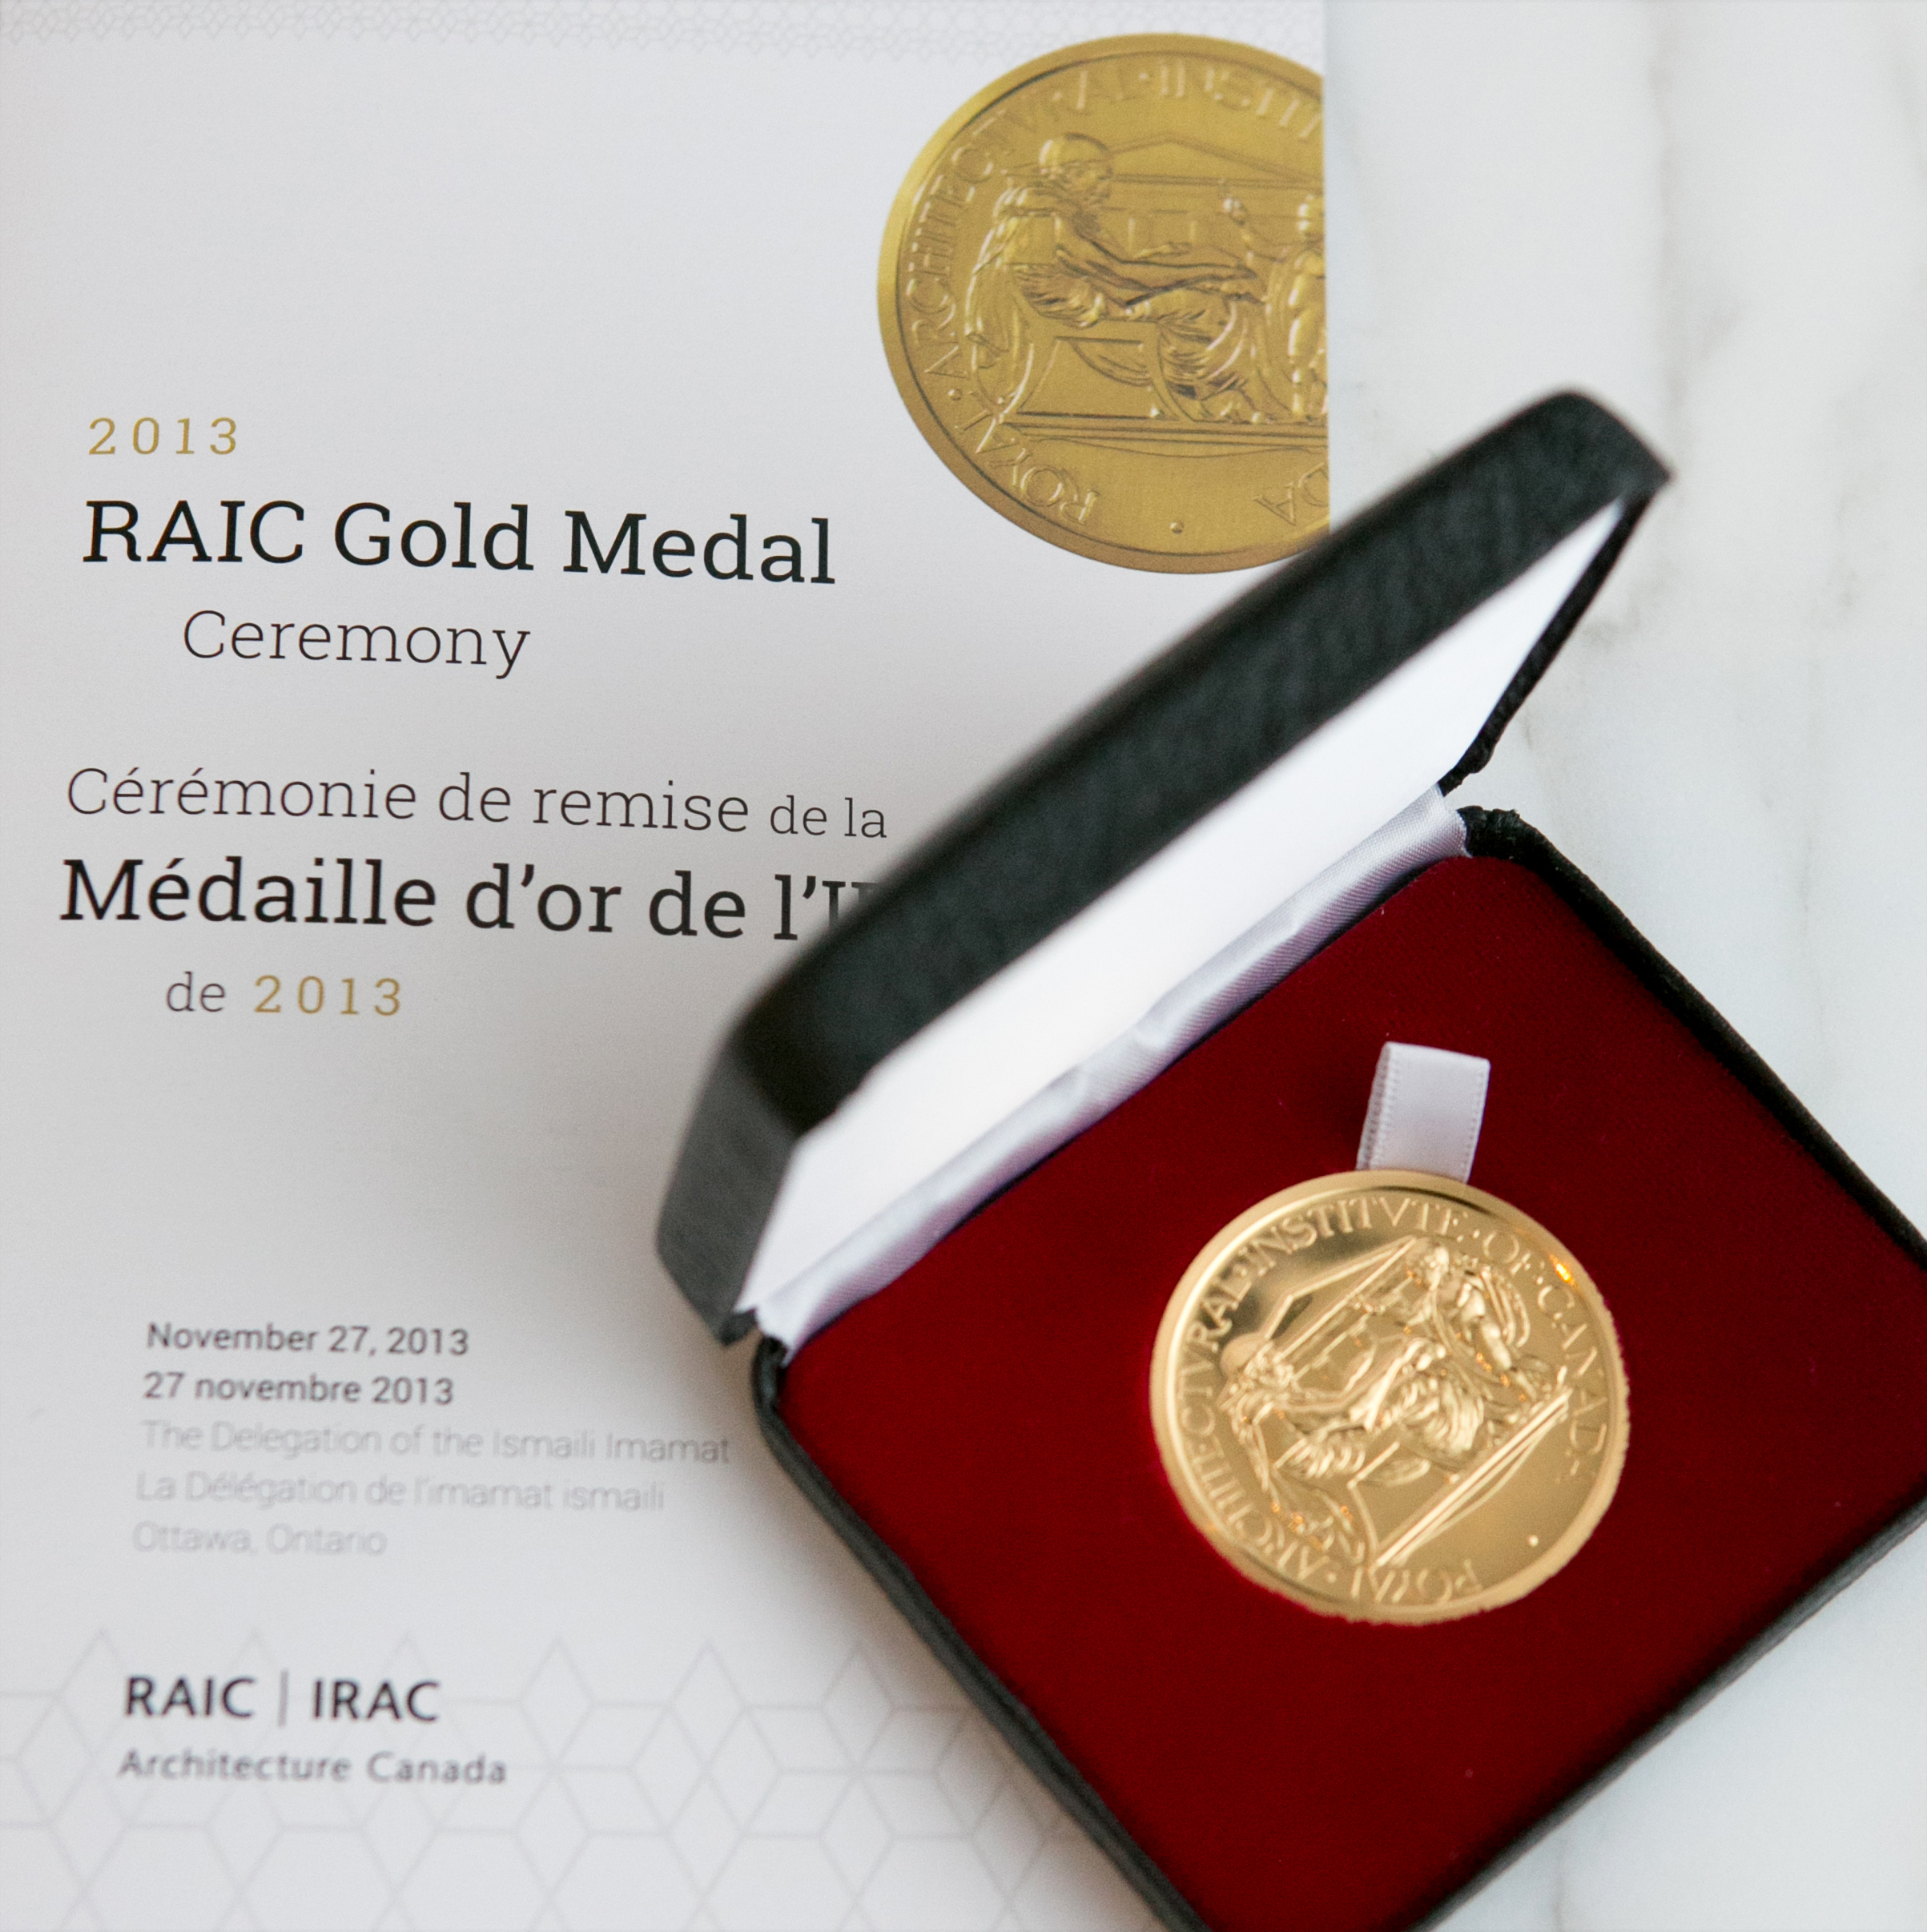 The Gold Medal is the highest honour bestowed by the Royal Architectural Institute of Canada. Photo: Mo Govindji